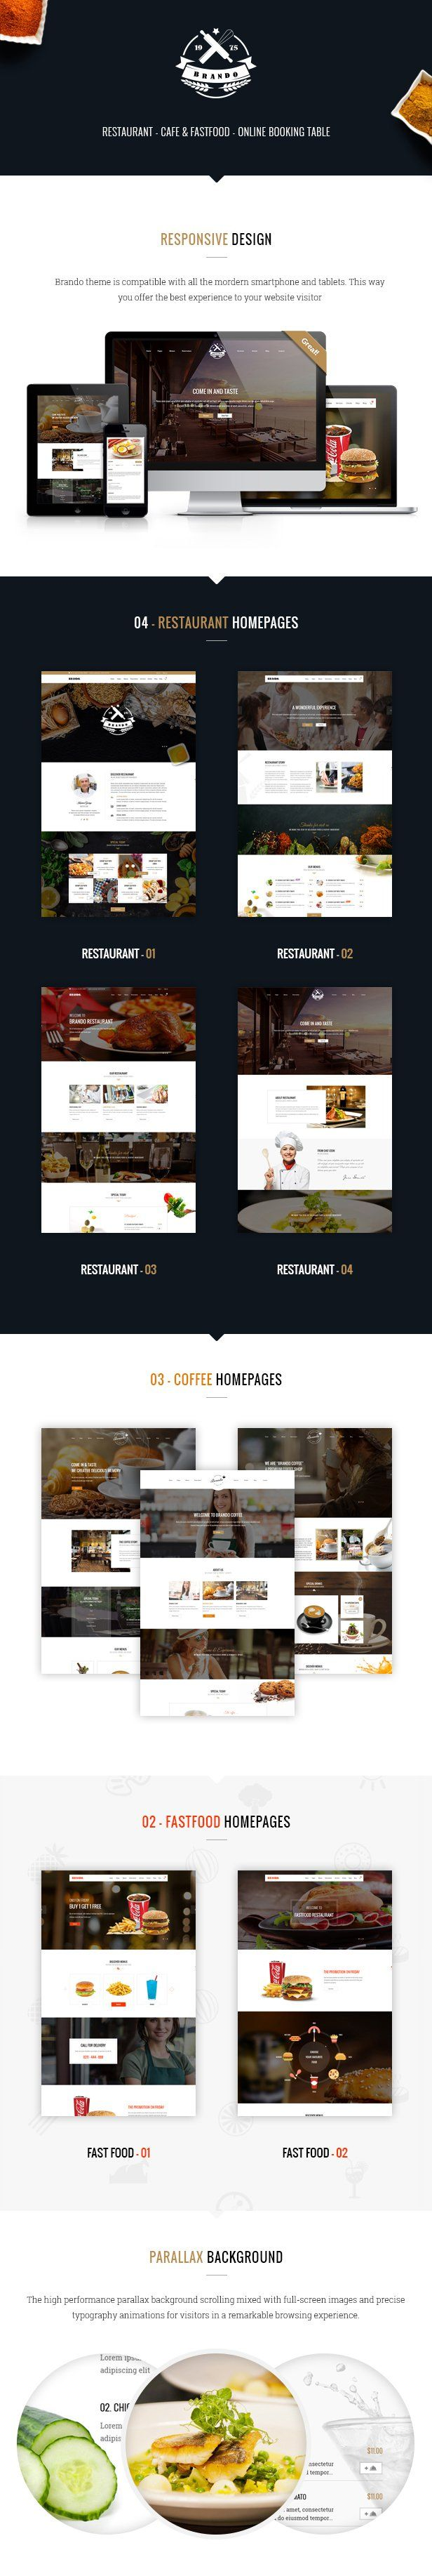 Brando Restaurant & Cafe Online Booking Table - Download theme here : http://themeforest.net/item/brando-restaurant-cafe-online-booking-table/15595217?ref=pxcr